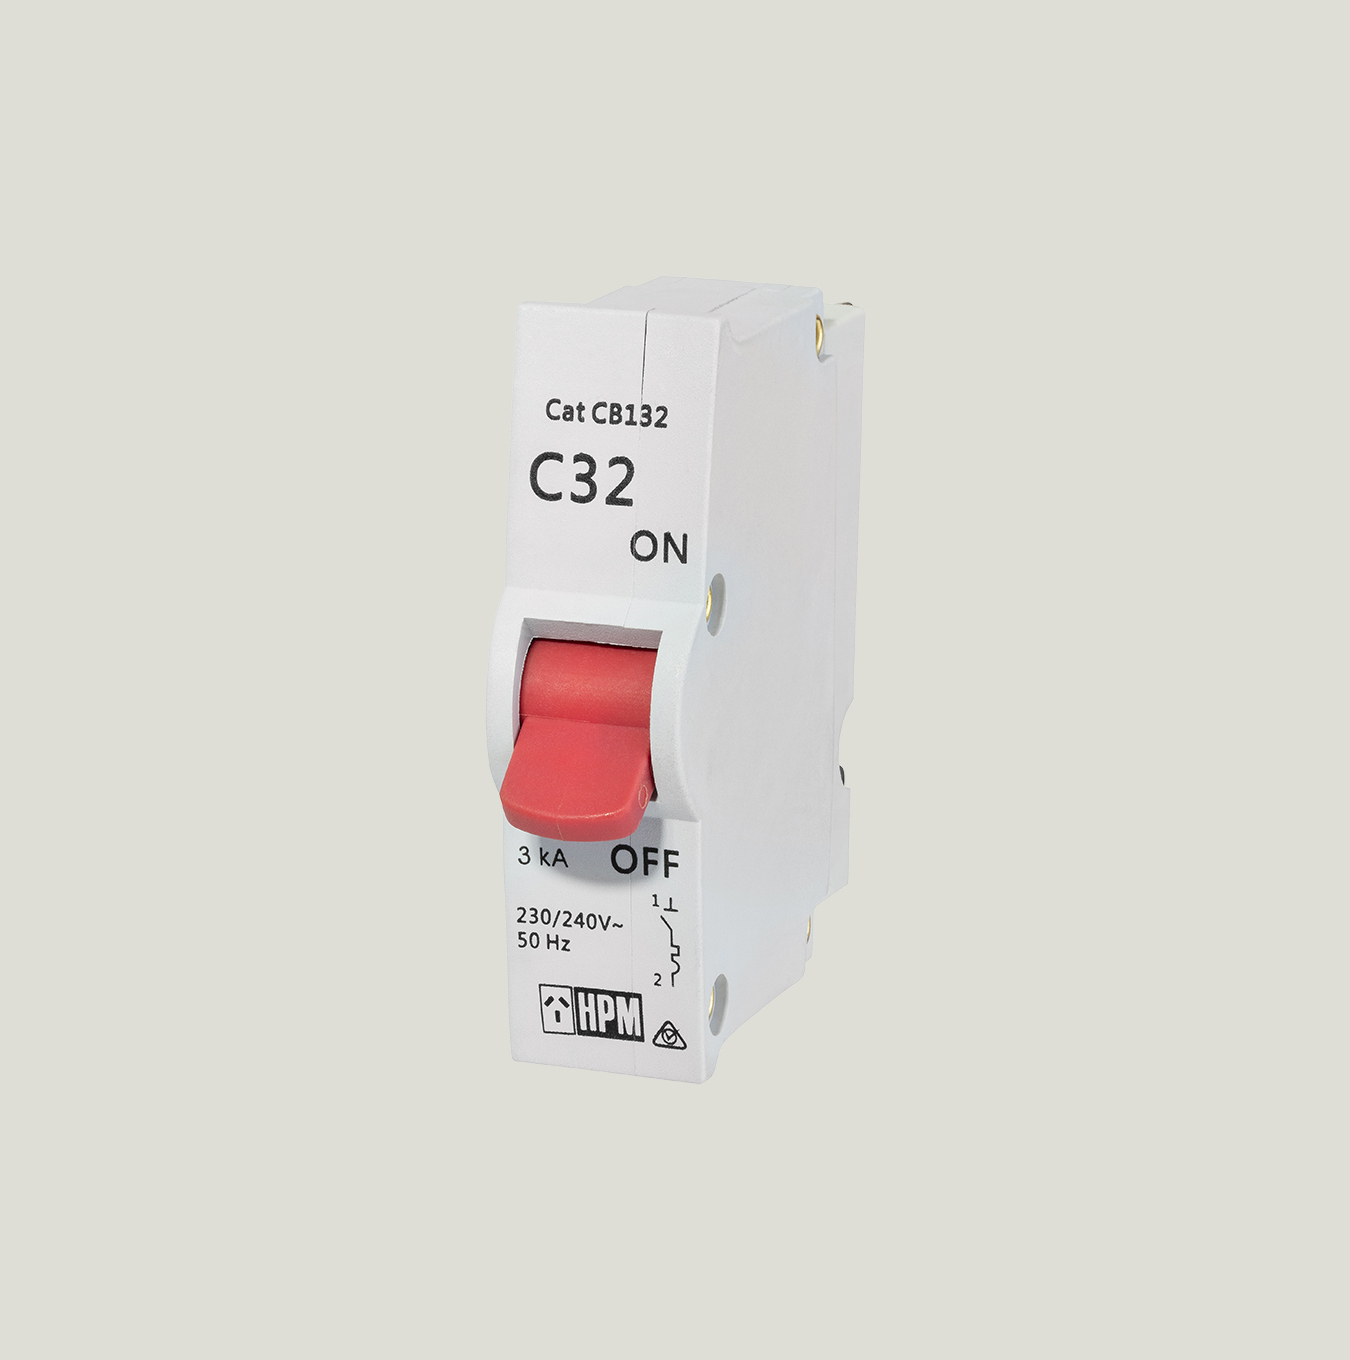 Circuit Breakers Au Site Howtoreplaceacircuitbreaker We Make Products To Keep You Safe Plug In